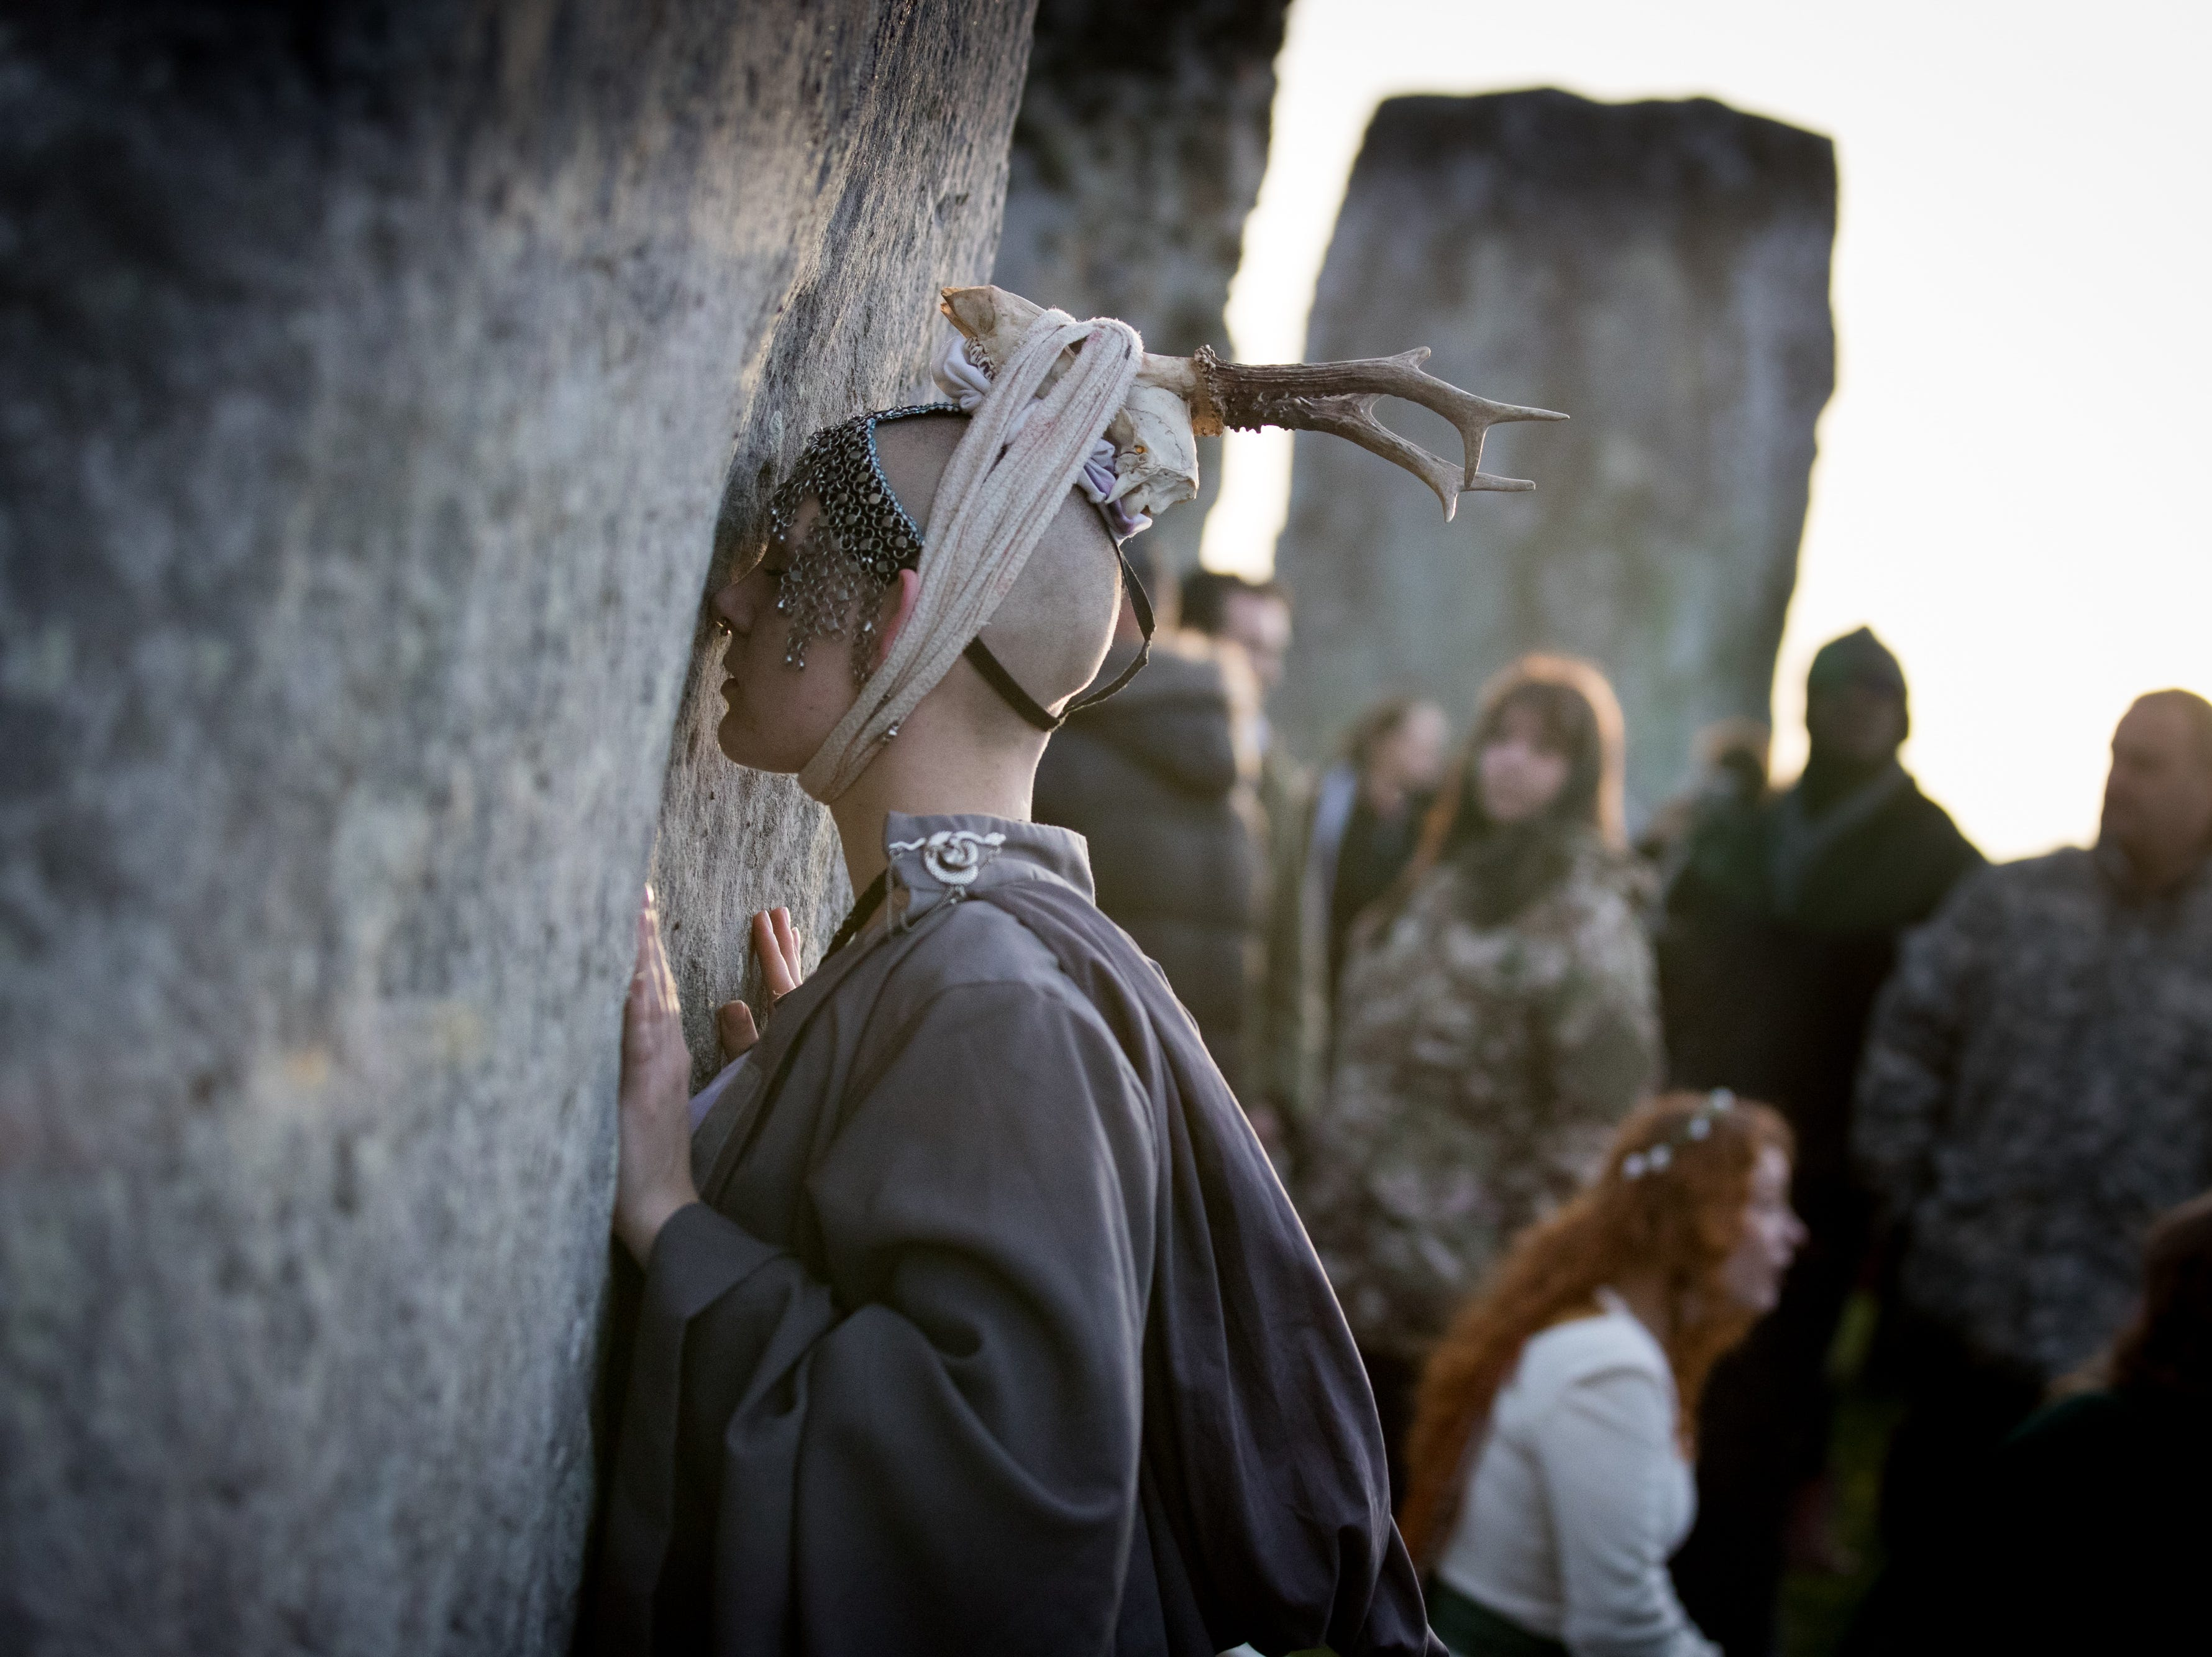 A woman holds one of the stones as druids, pagans and revelers gather at Stonehenge. Winter's shortest day is typically not the coldest day of the year. There is a bit of a lag between the shortest day of the year and the coldest average temperatures for most spots in the USA.